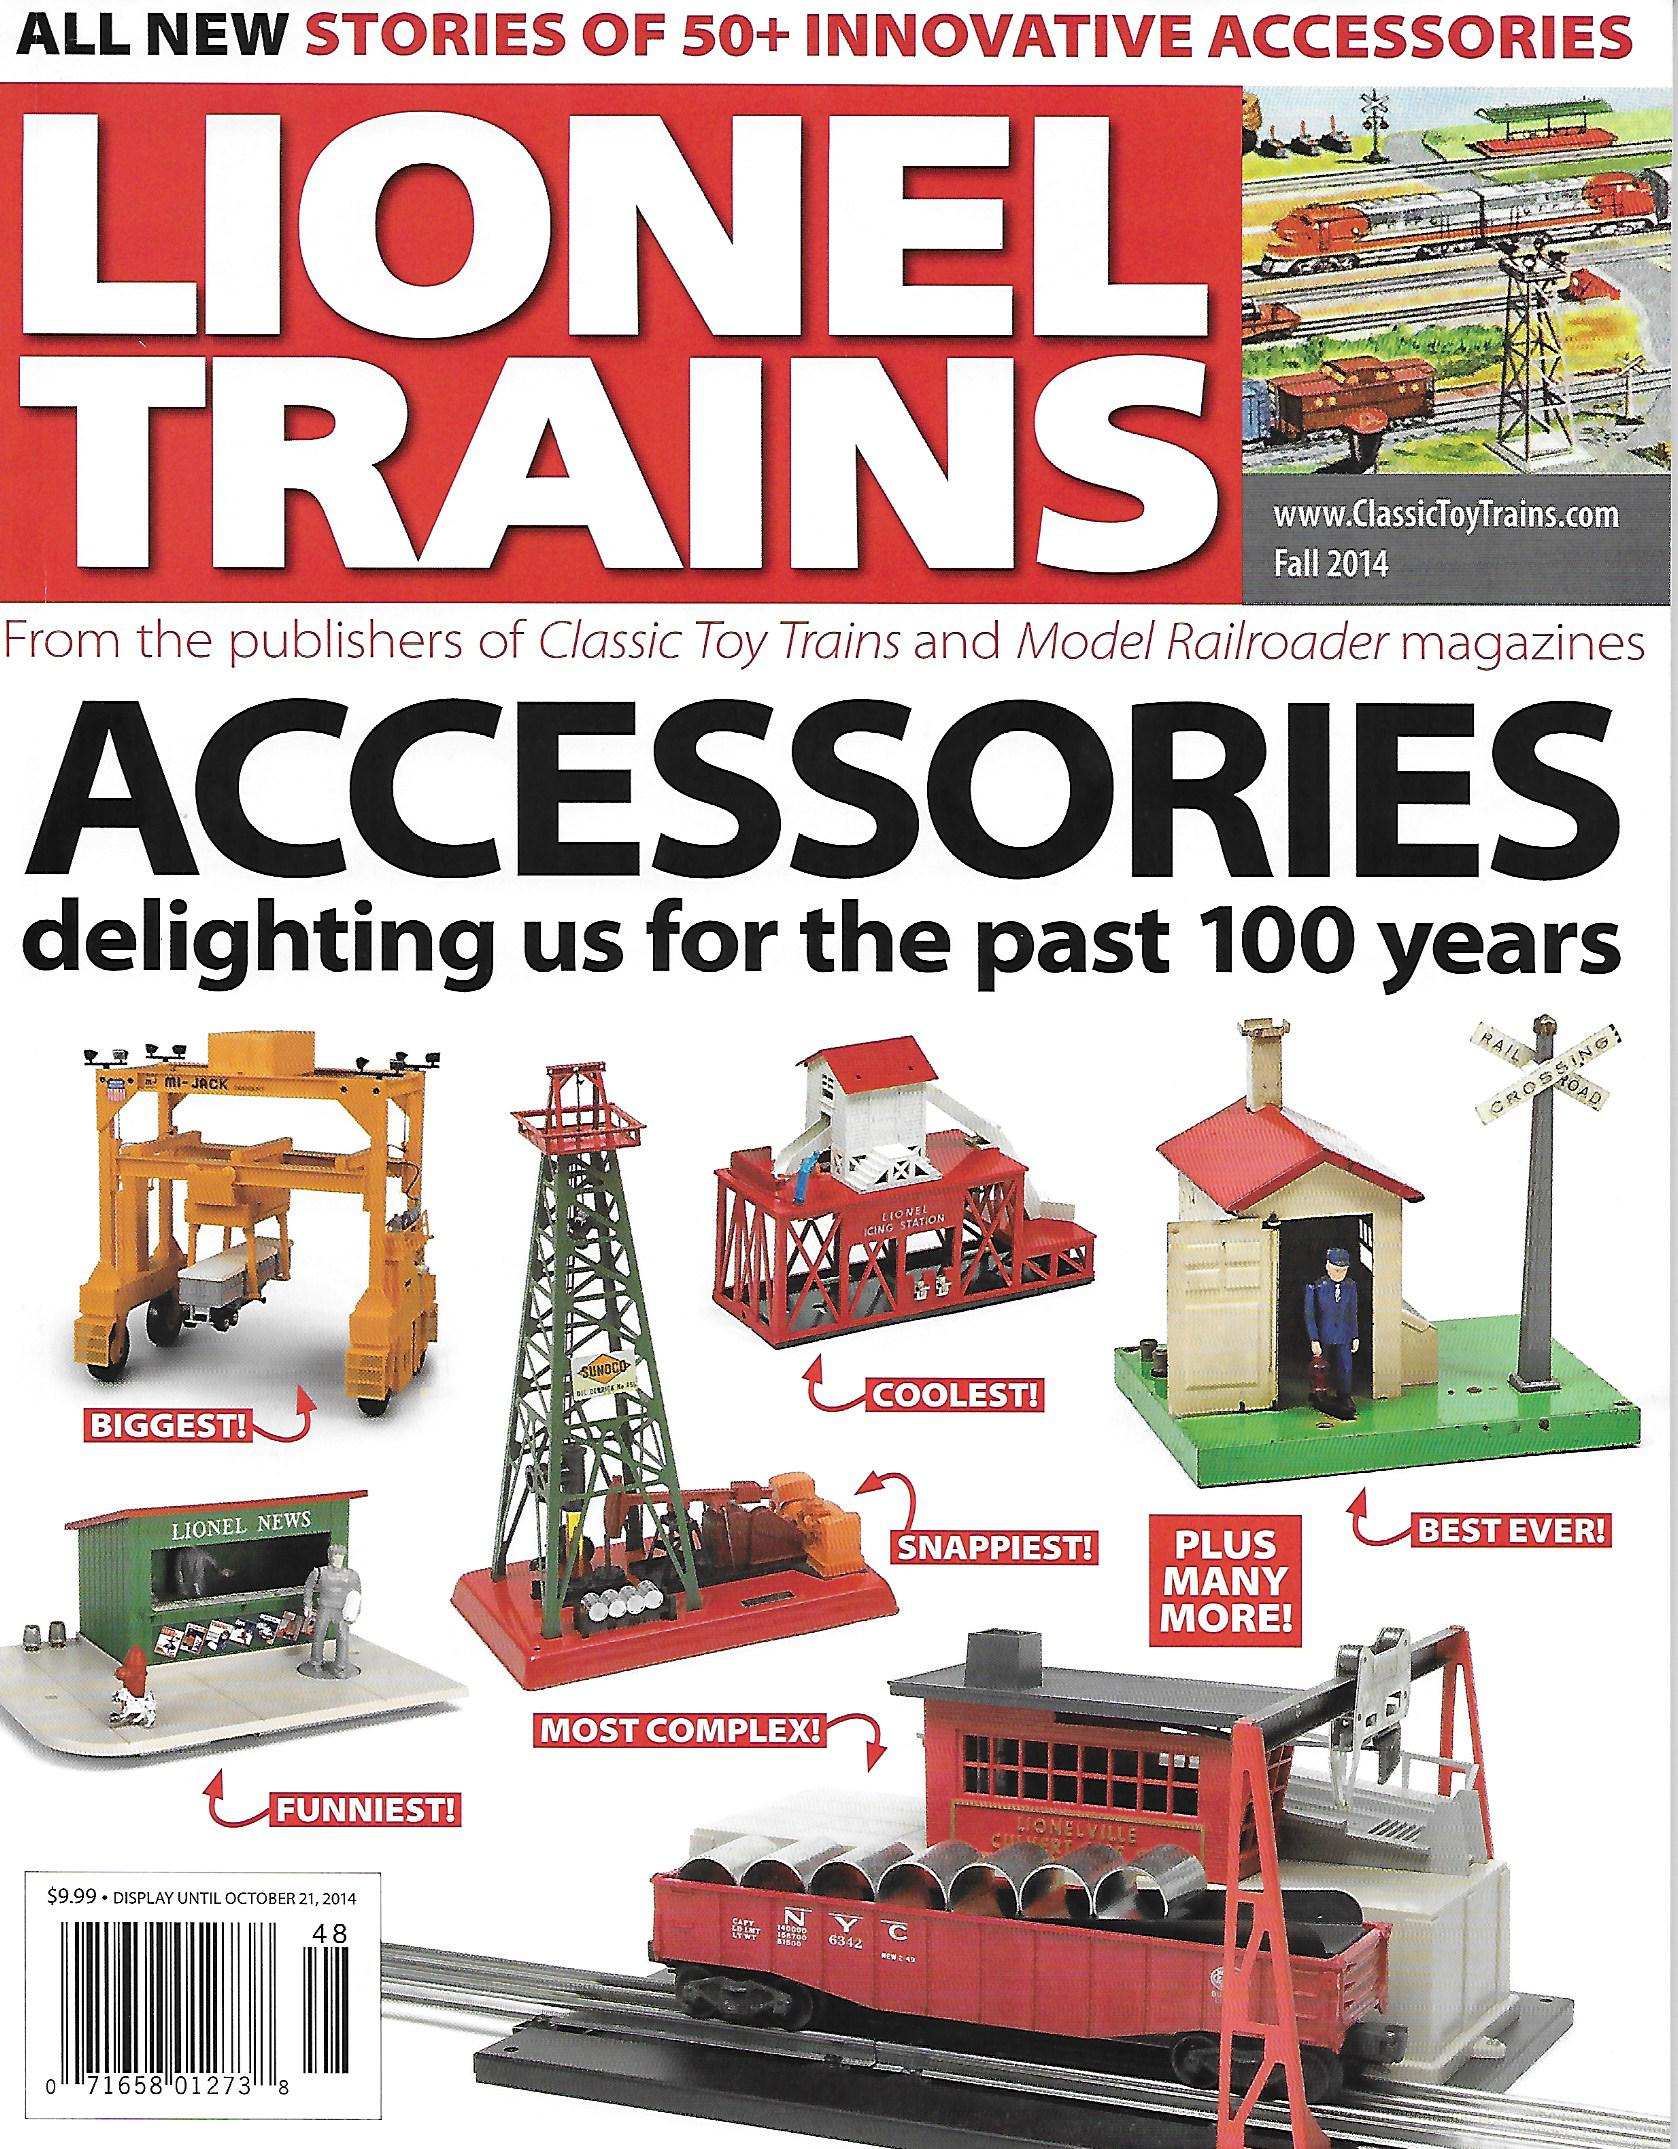 Lionel Trains Accessories (Classic Toy Train Magazine Special Issue) image